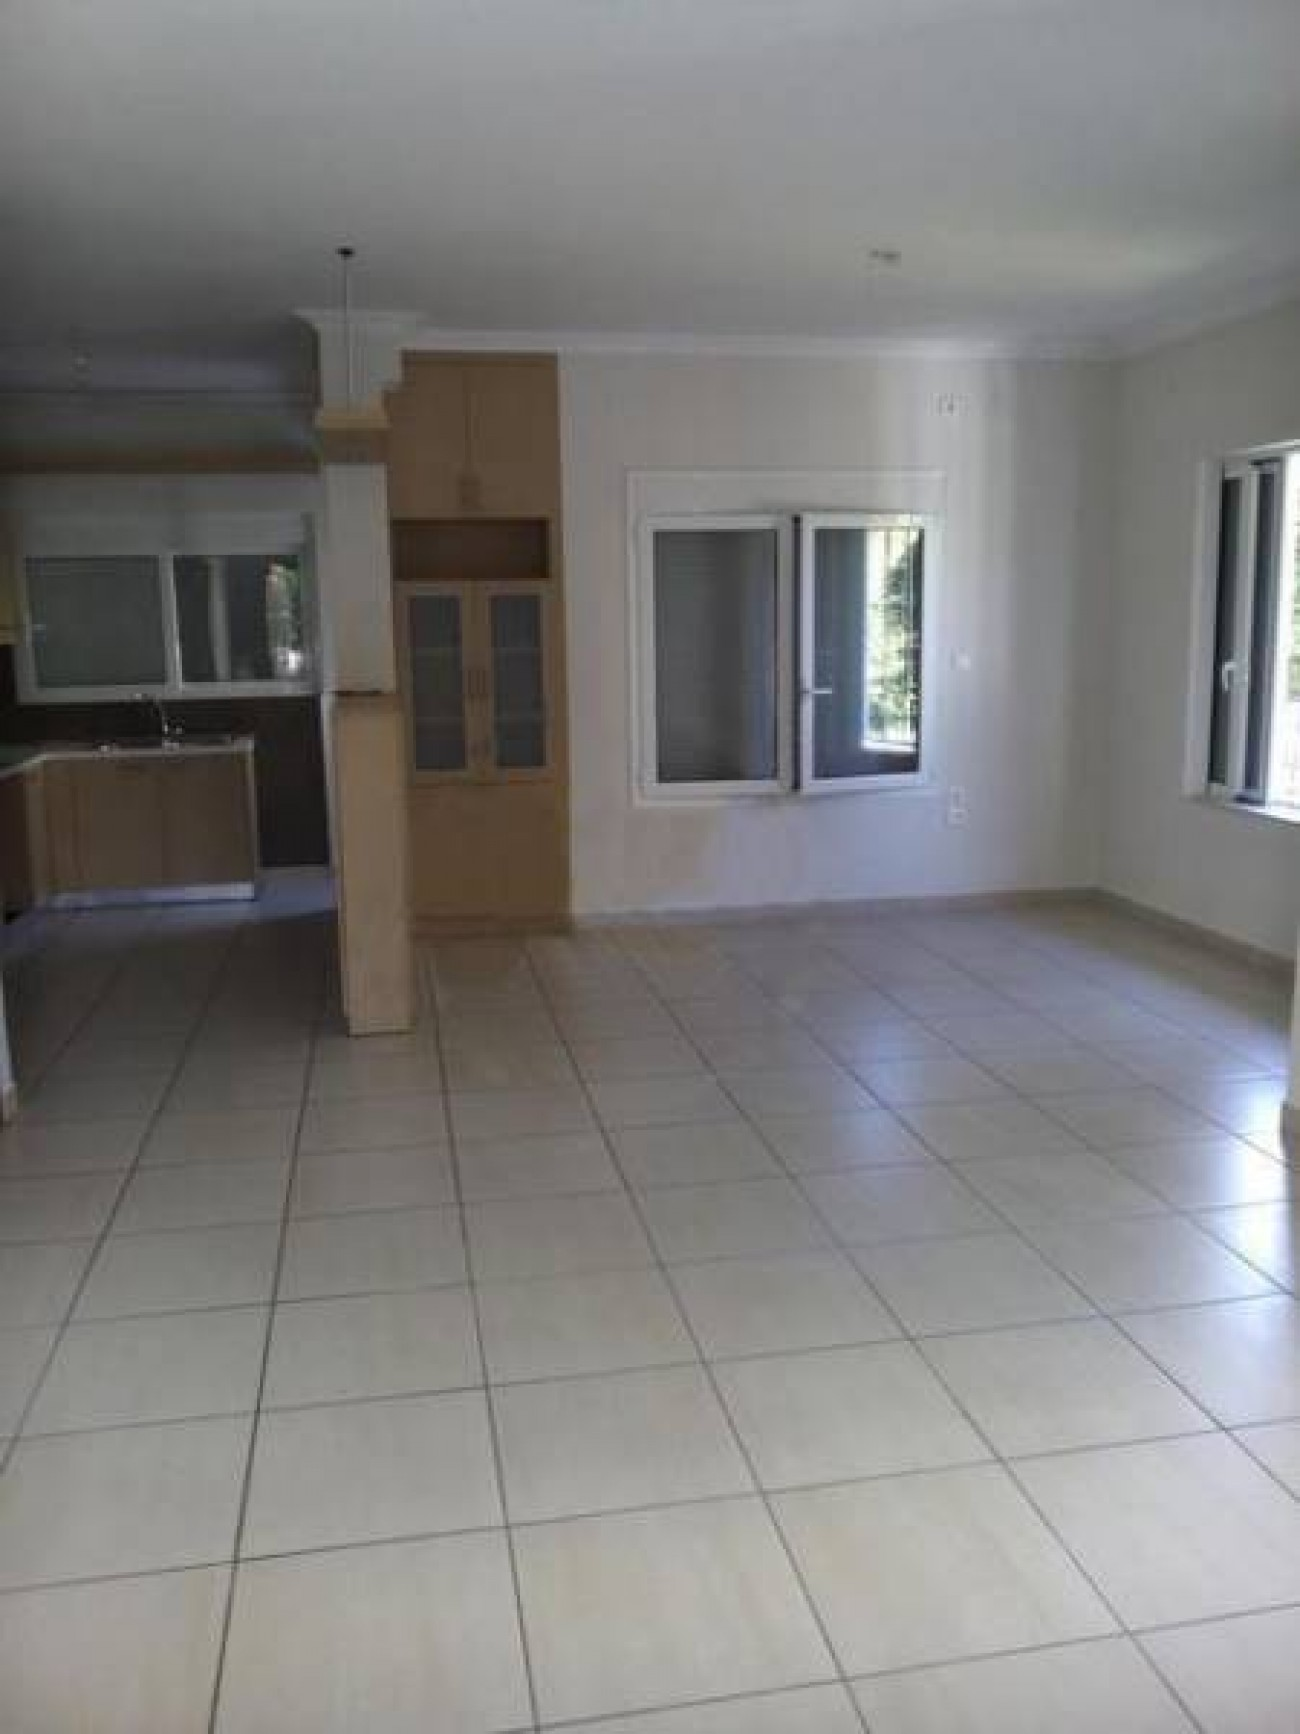 Apartment for Sale in Nisyros, Dodekanisa, Greece